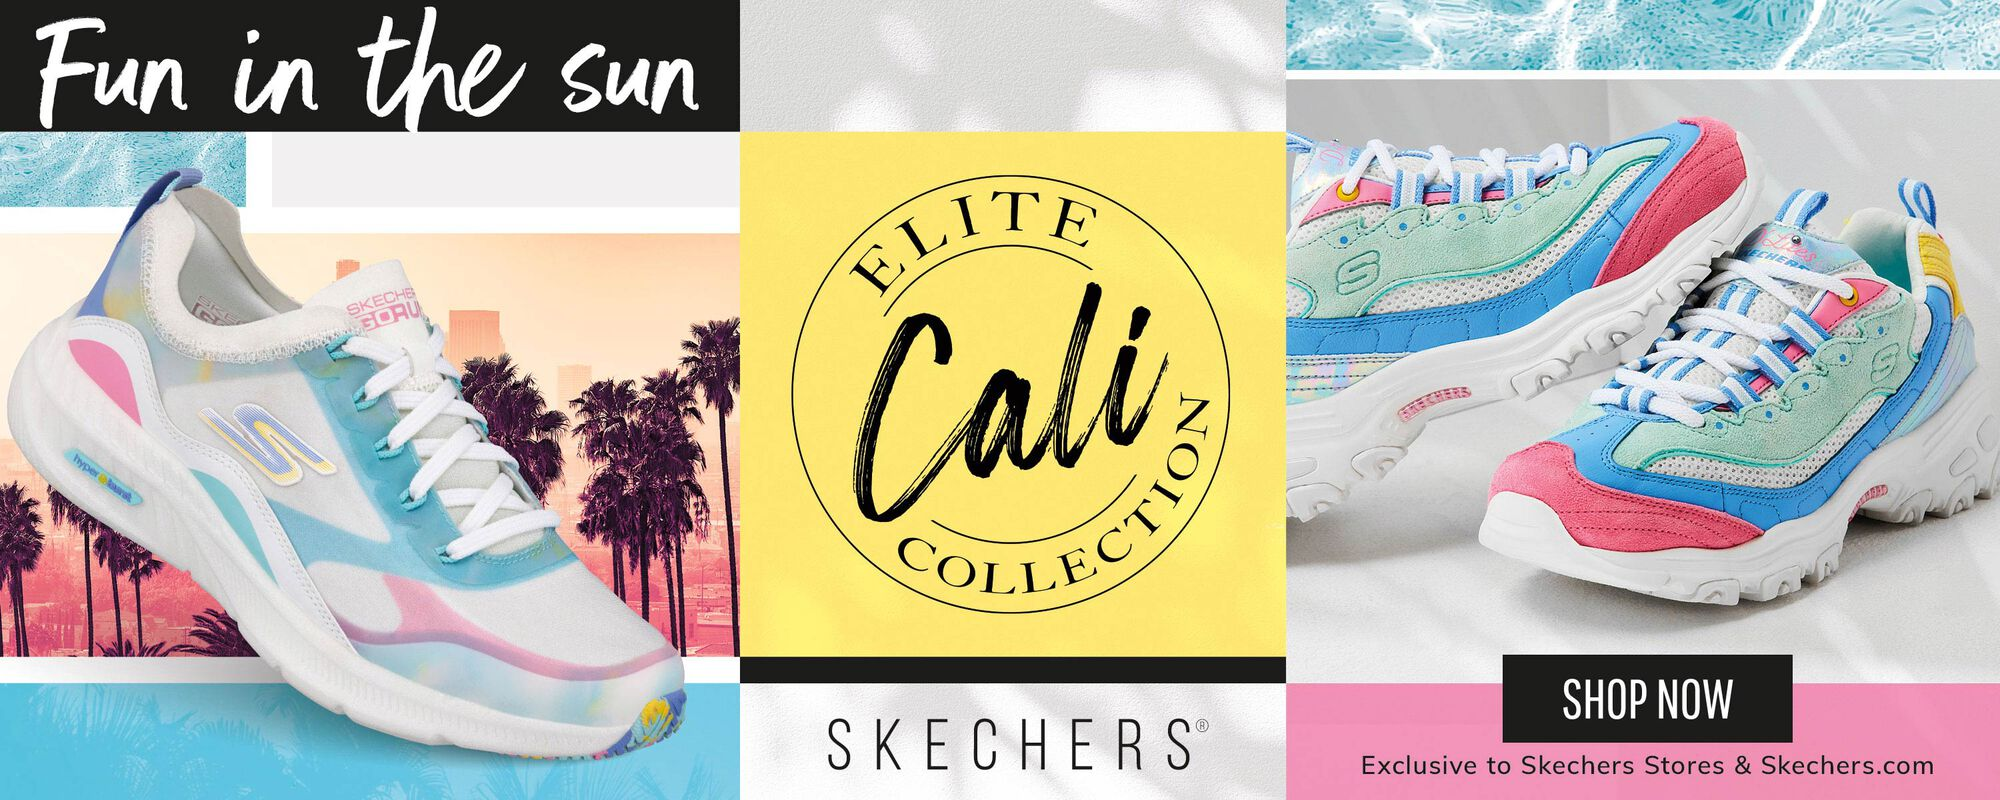 Fun in the Sun - Cali Elite Collection - Skechers - Shop Now